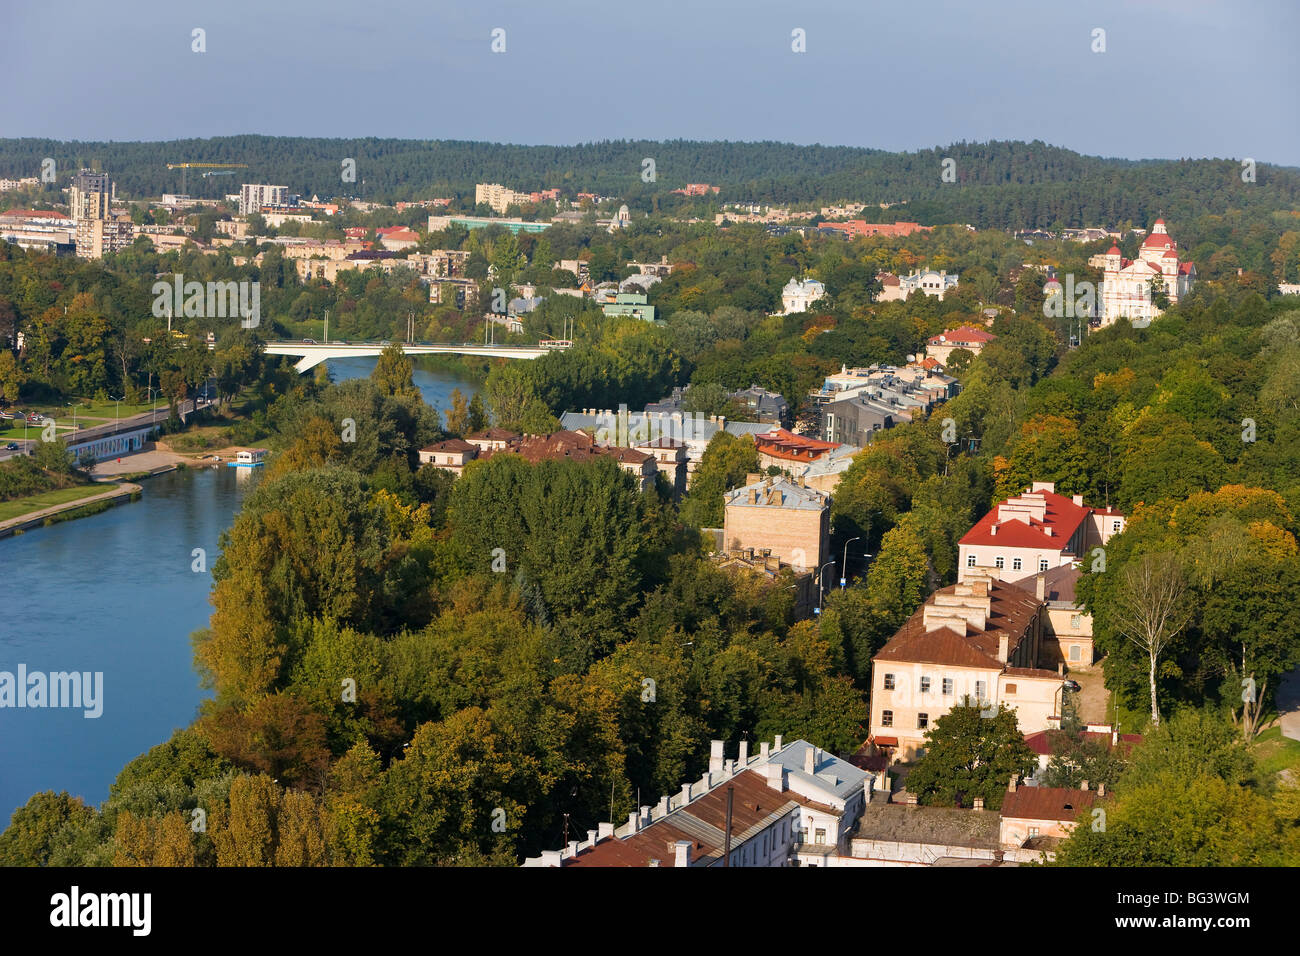 View over the Old Town, Vilnius, Lithuania, Baltic States, Europe - Stock Image